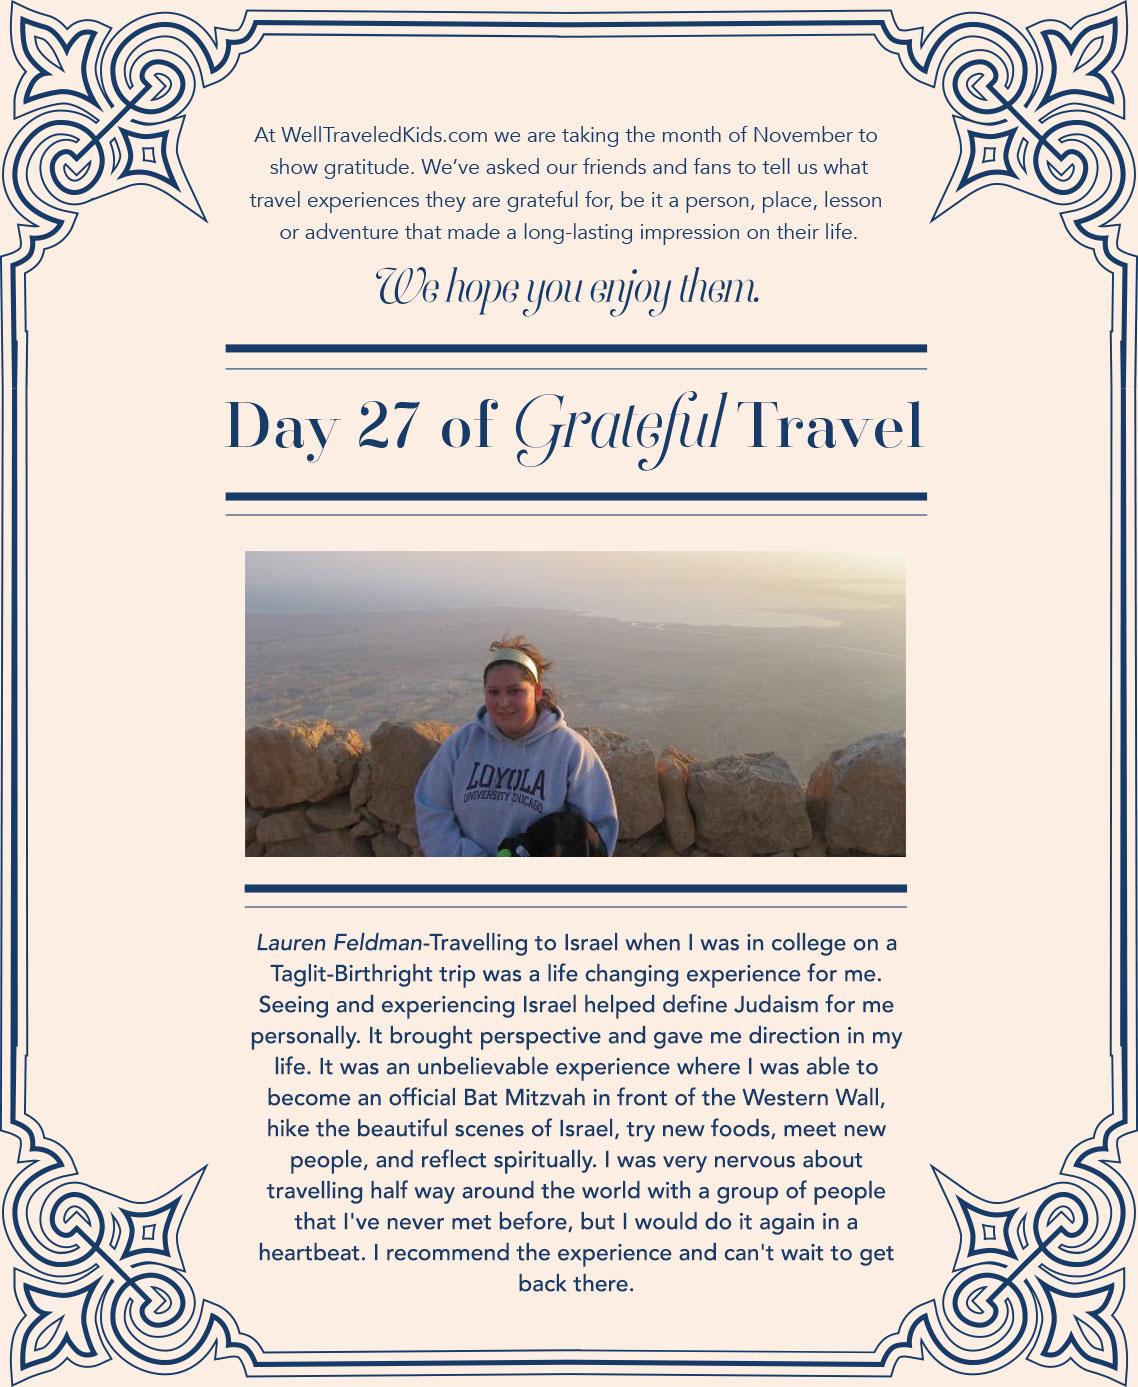 GratefulTravel_Day_27